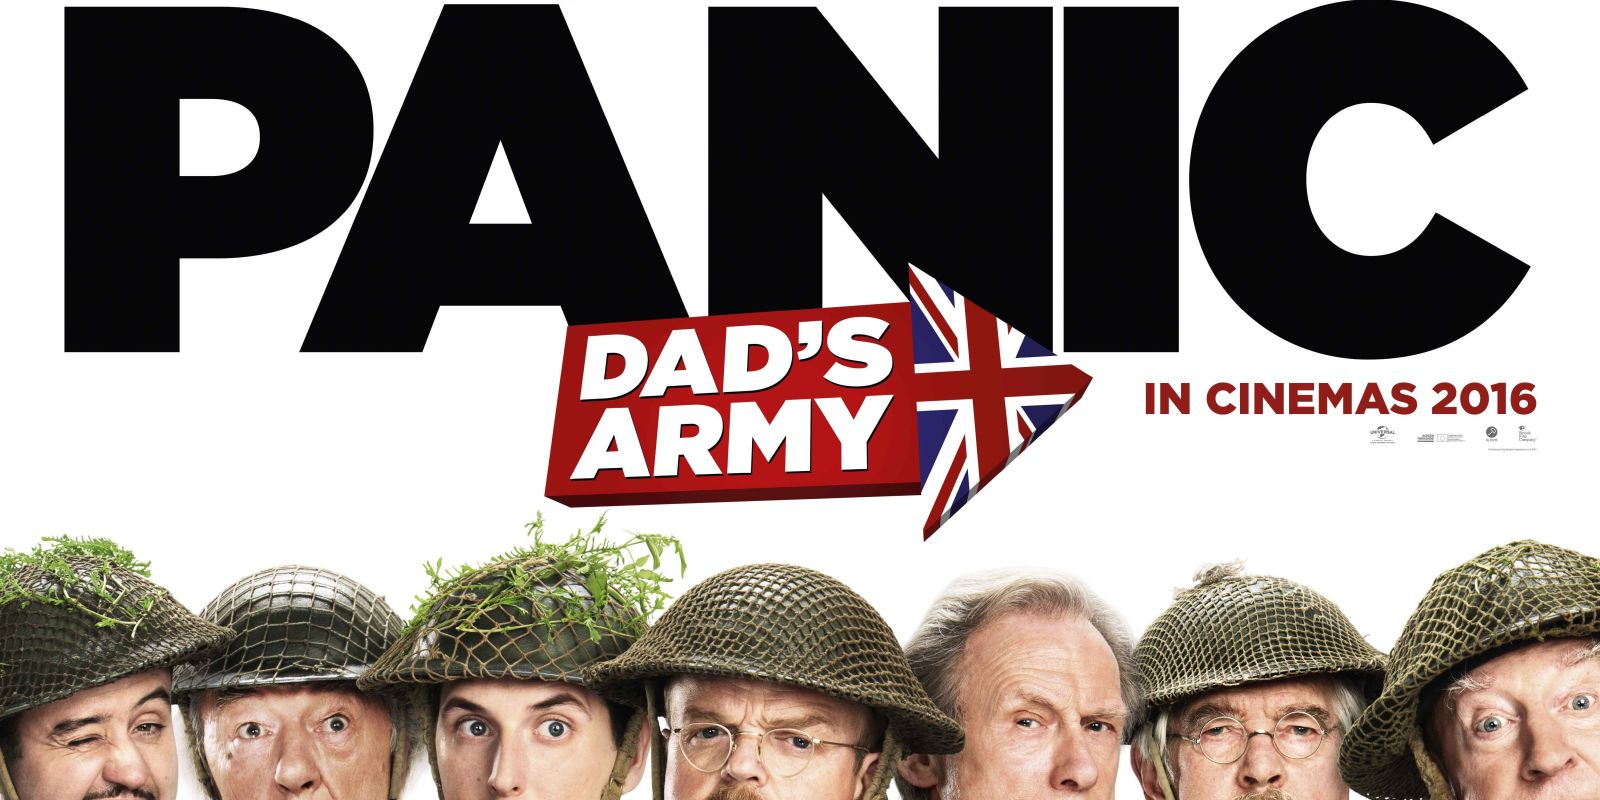 Heres The First Poster For New Dads Army Movie